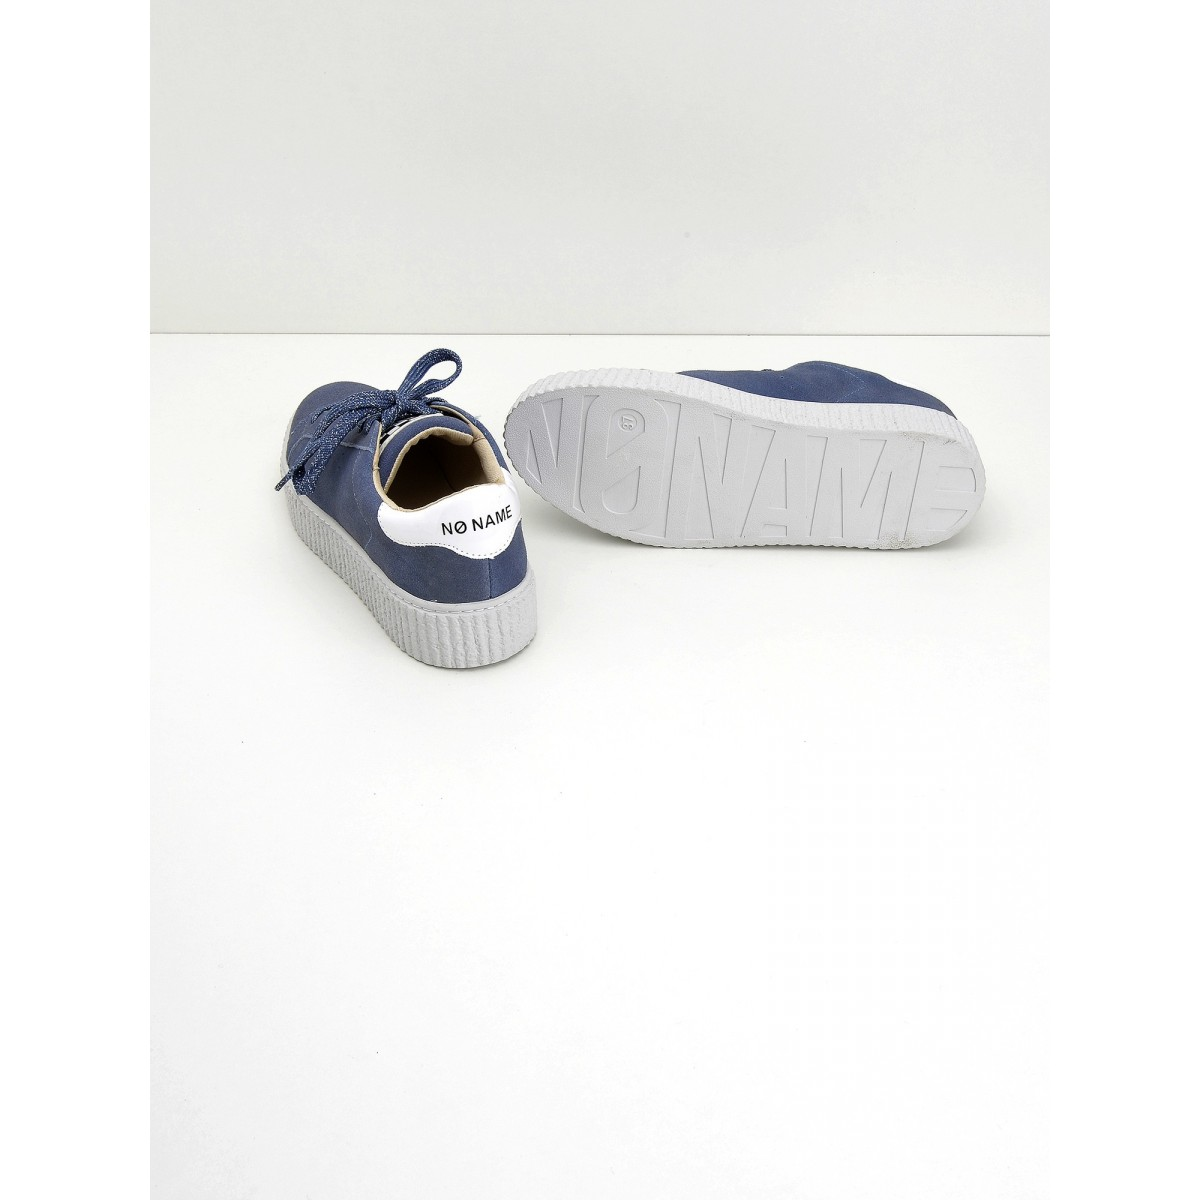 No Name Picadilly Sneaker - Suede - Denim